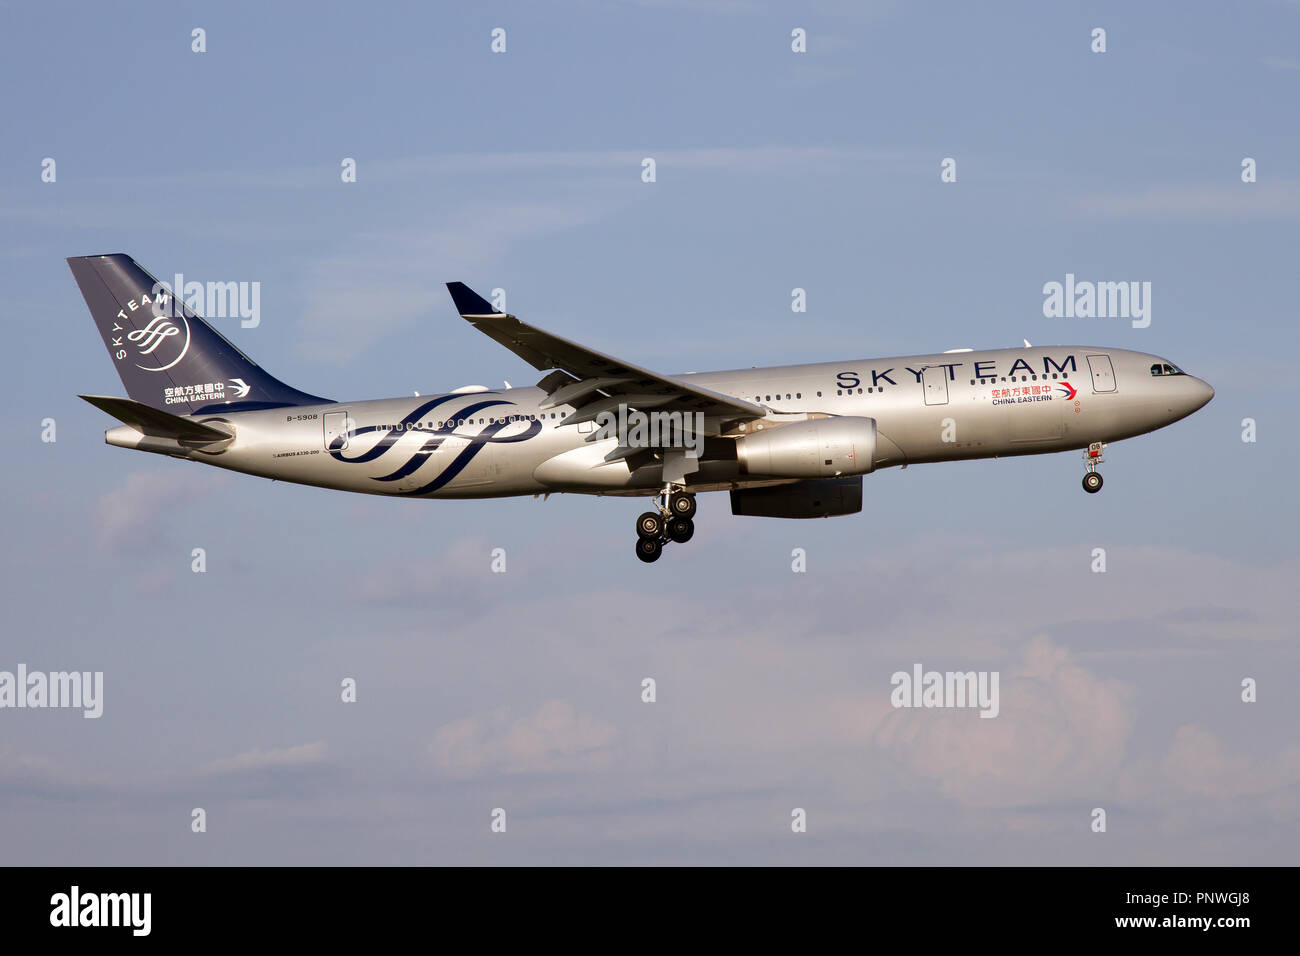 China Eastern Airlines Airbus 330-200 in Skyteam livery landing at Rome Fiumicino airport - Stock Image